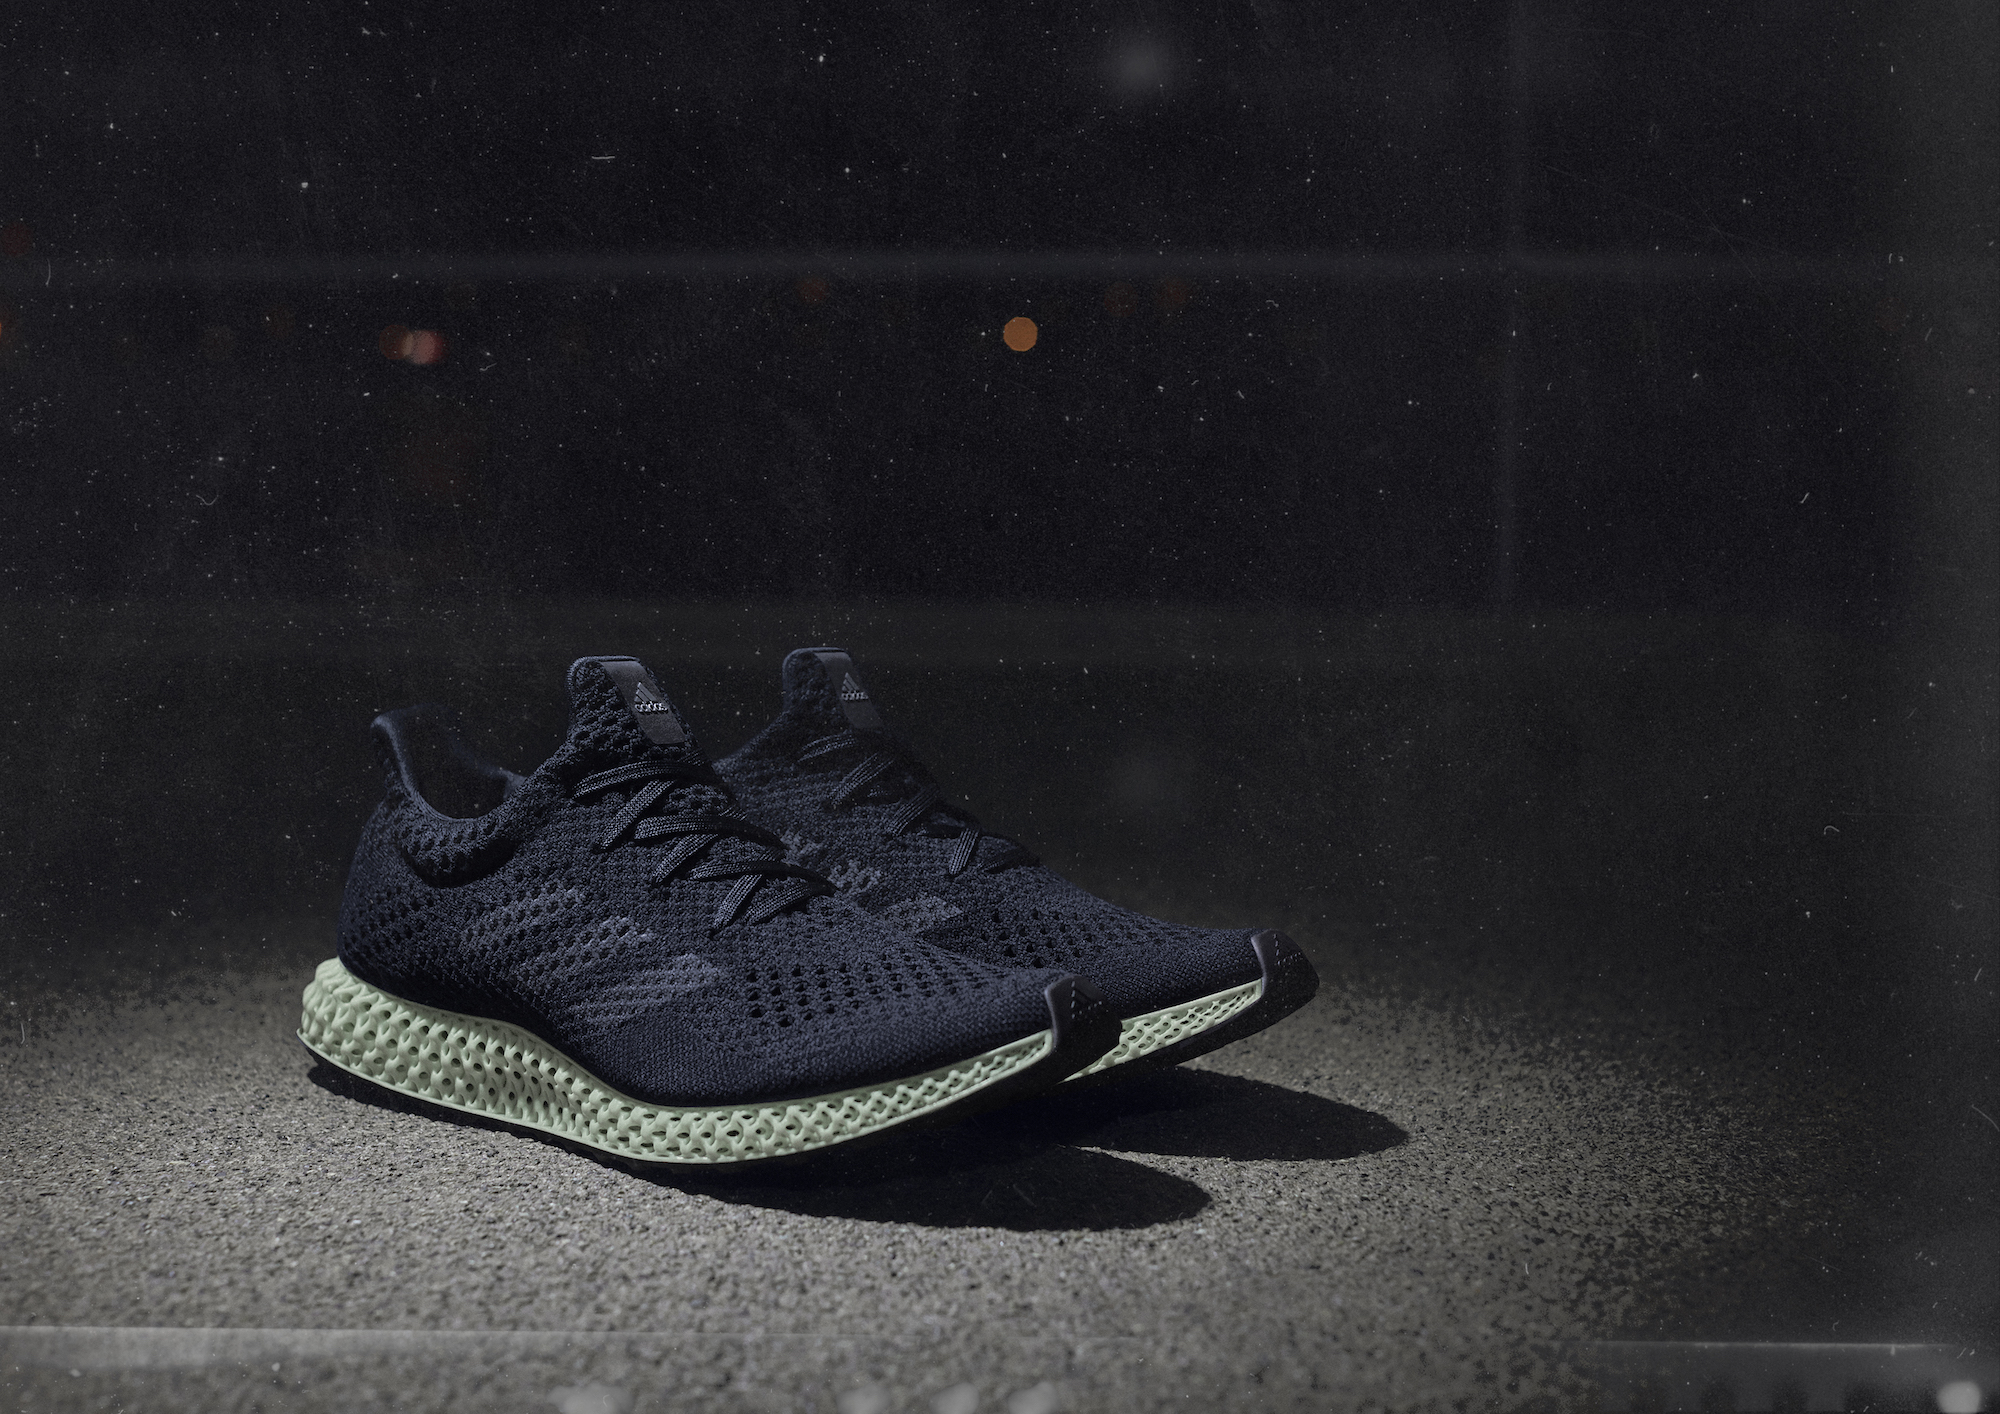 adidas Announces Limited Release of the Futurecraft 4D